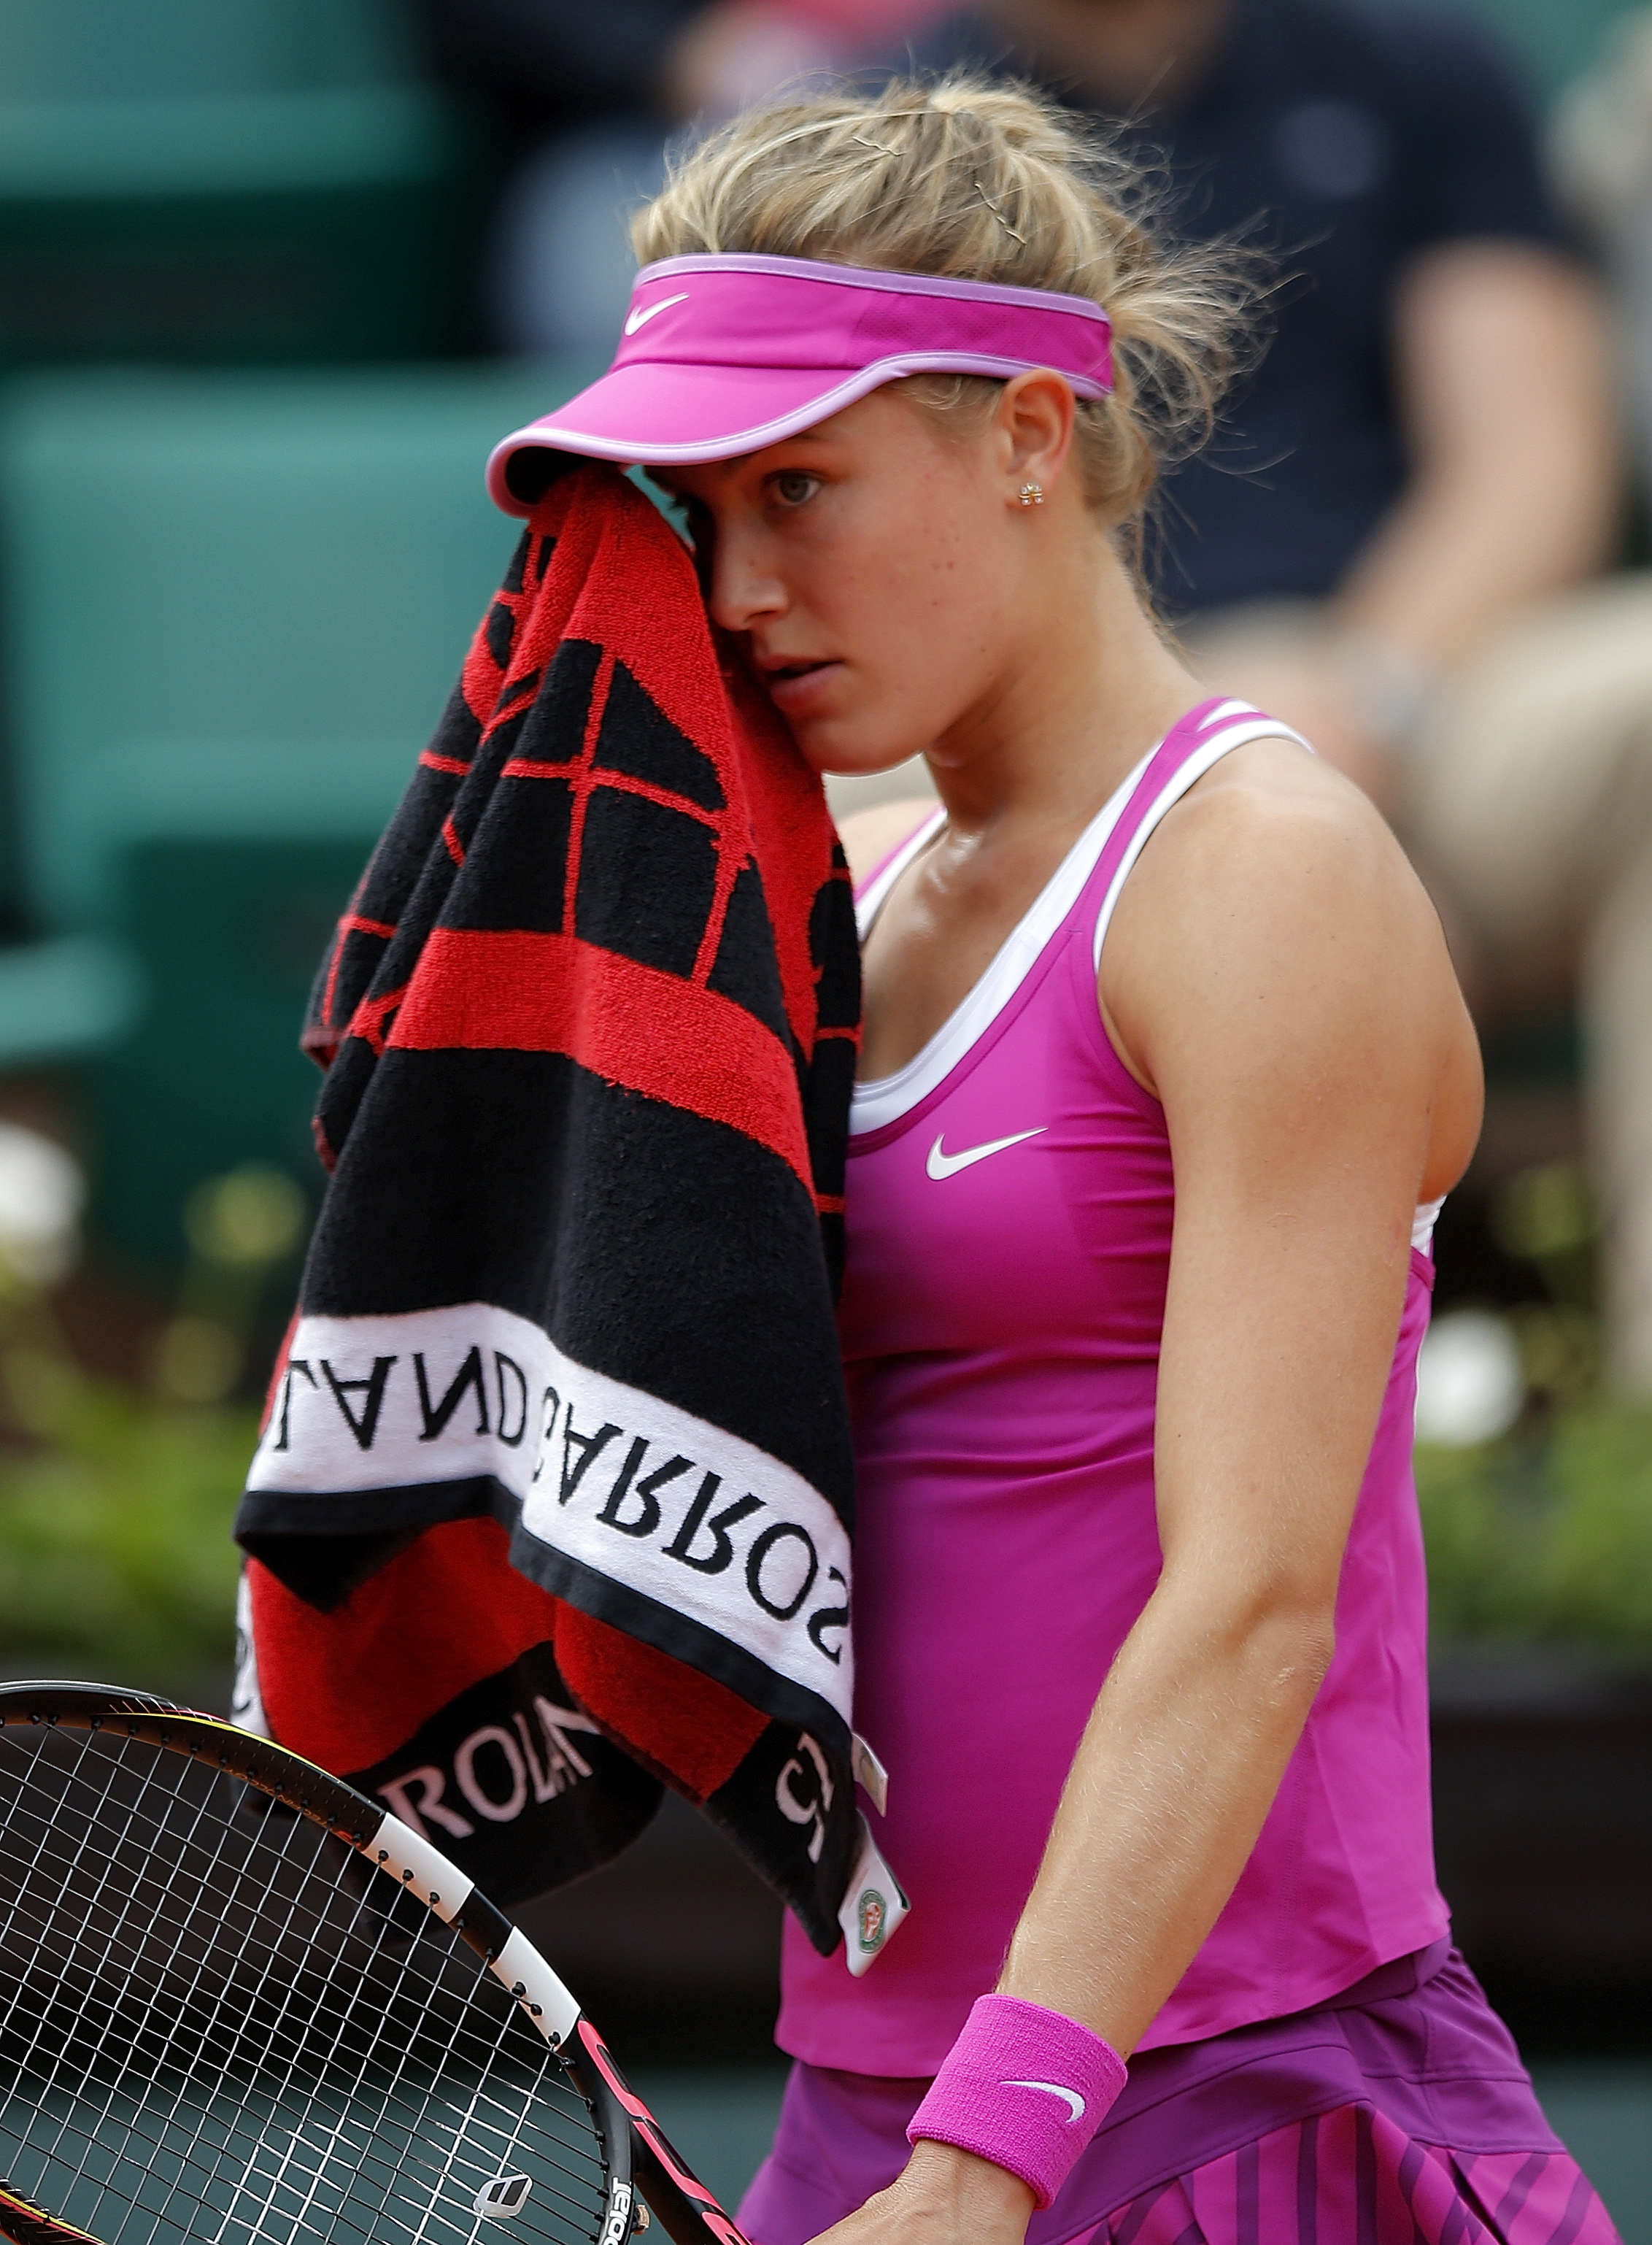 CAPTION CORRECTION, CORRECTS FINAL SCORE IN SECOND SENTENCE - Canada's Eugenie Bouchard wipes her face as she plays France's Kristina Mladenovic during their first round match of the French Open tennis tournament at the Roland Garros stadium, Tuesday, May